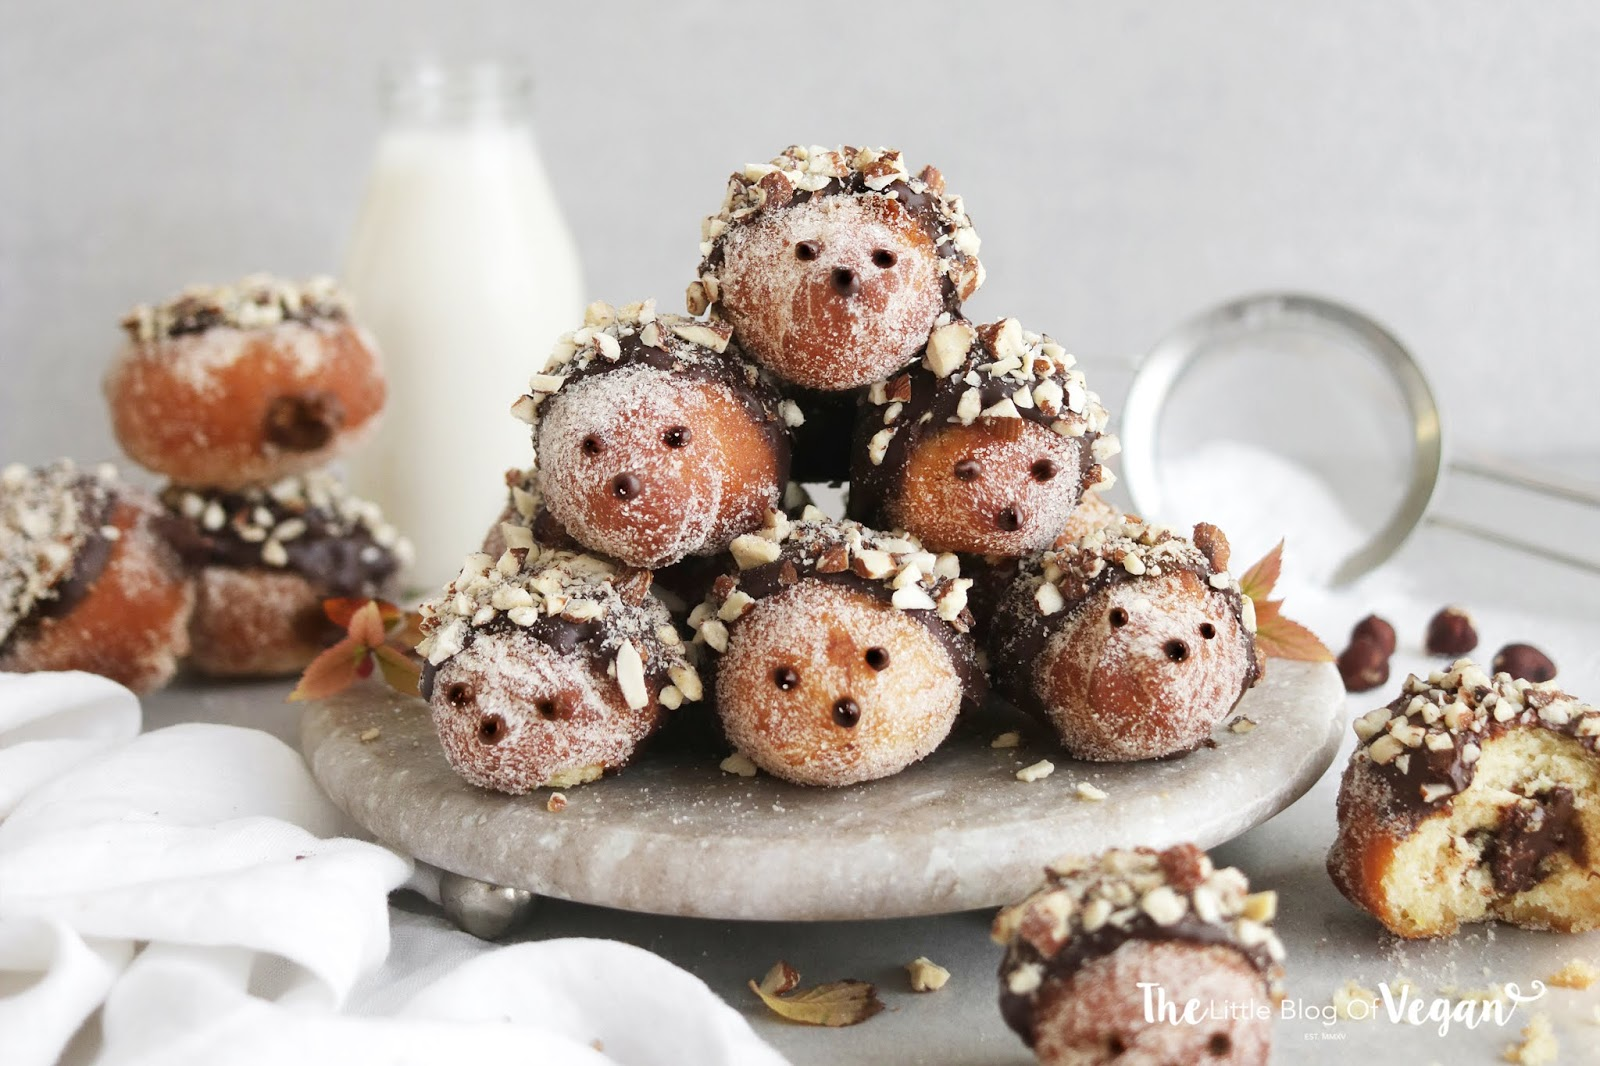 Vegan Nutella hedgehog doughnut hole recipe